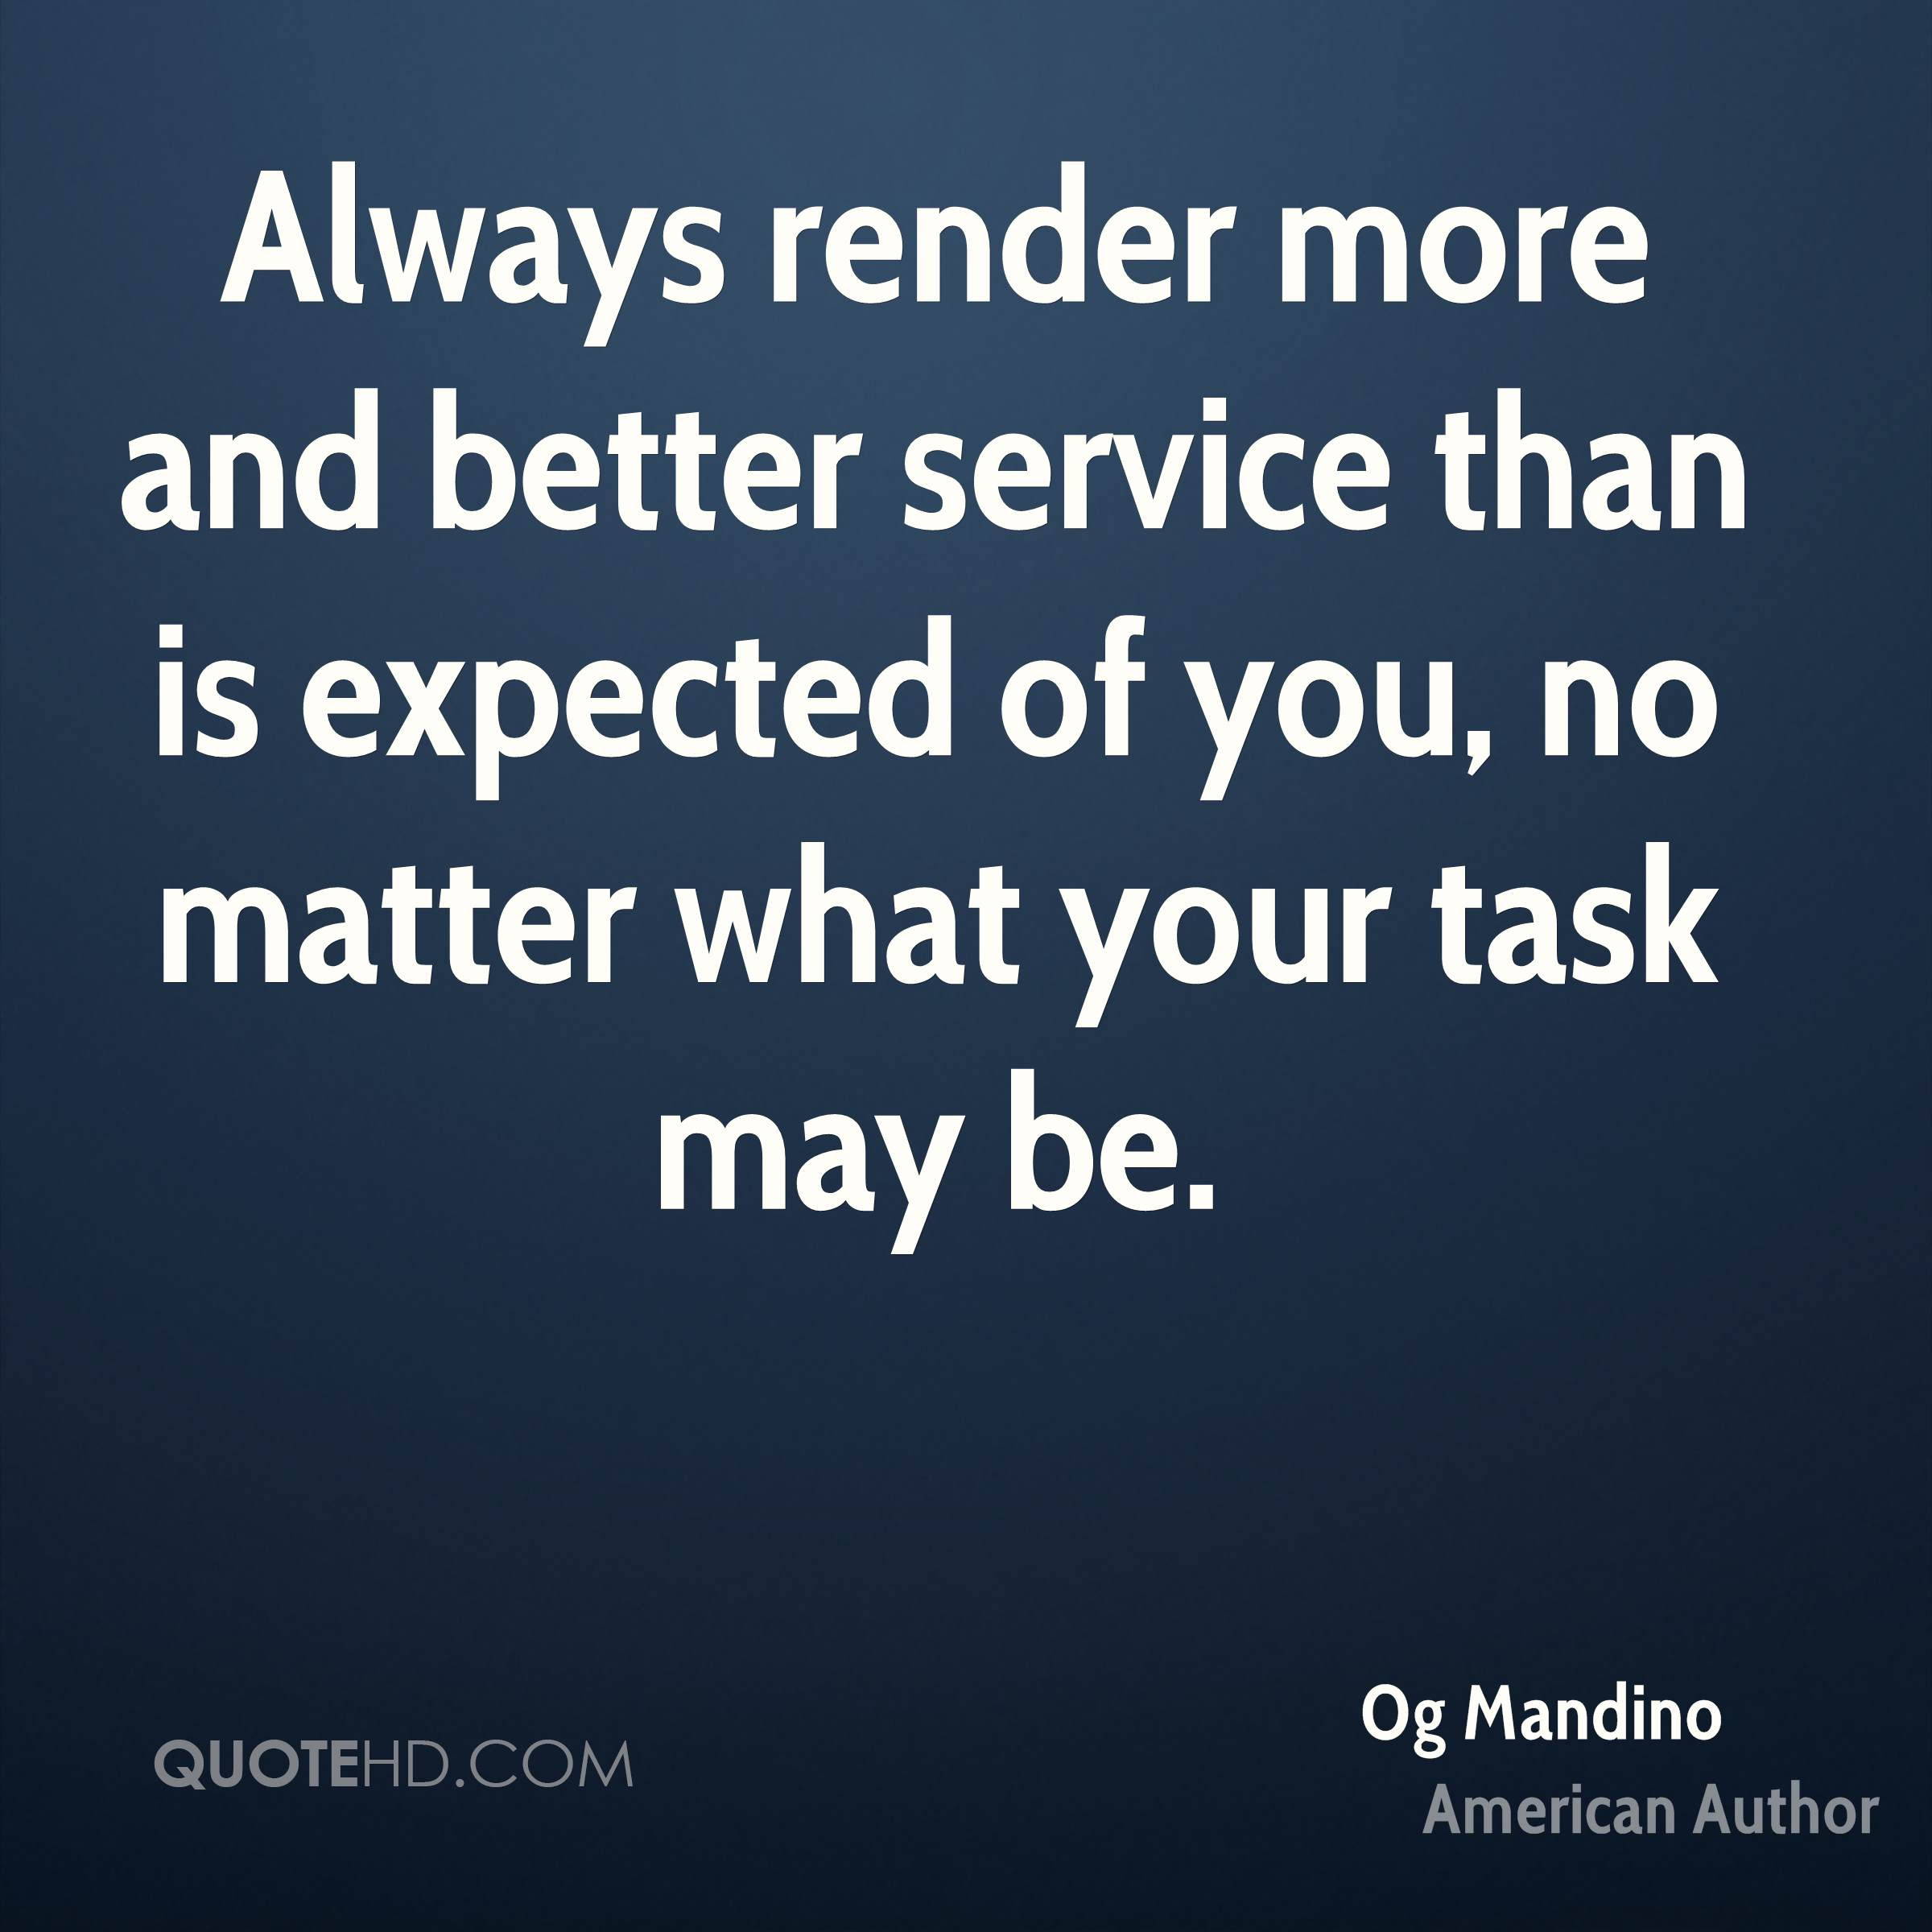 Always render more and better service than is expected of you no matter what your